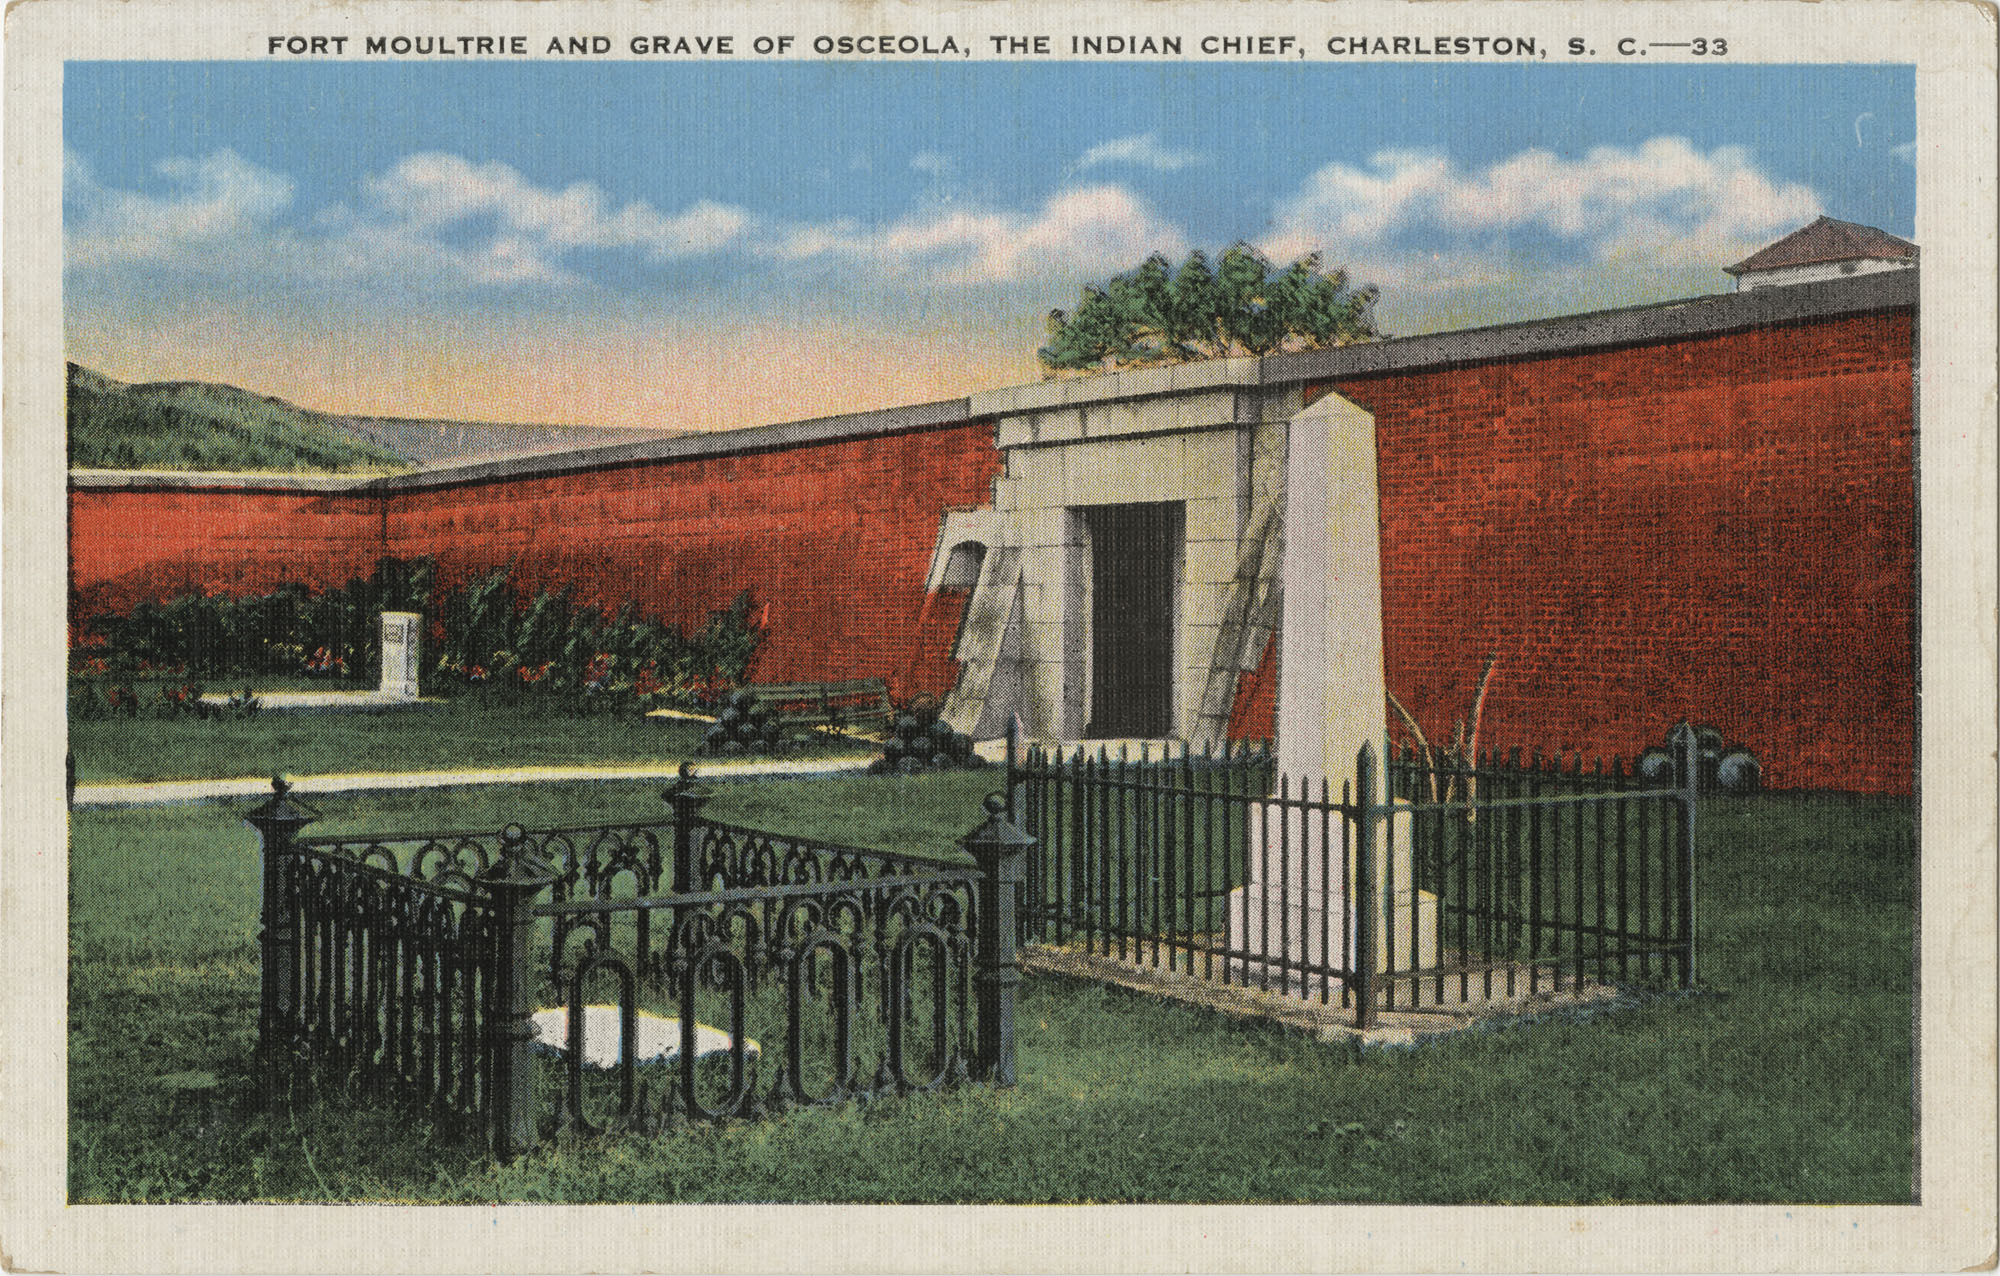 Fort Moultrie and Grave of Osceola, The Indian Chief, Charleston, S.C.